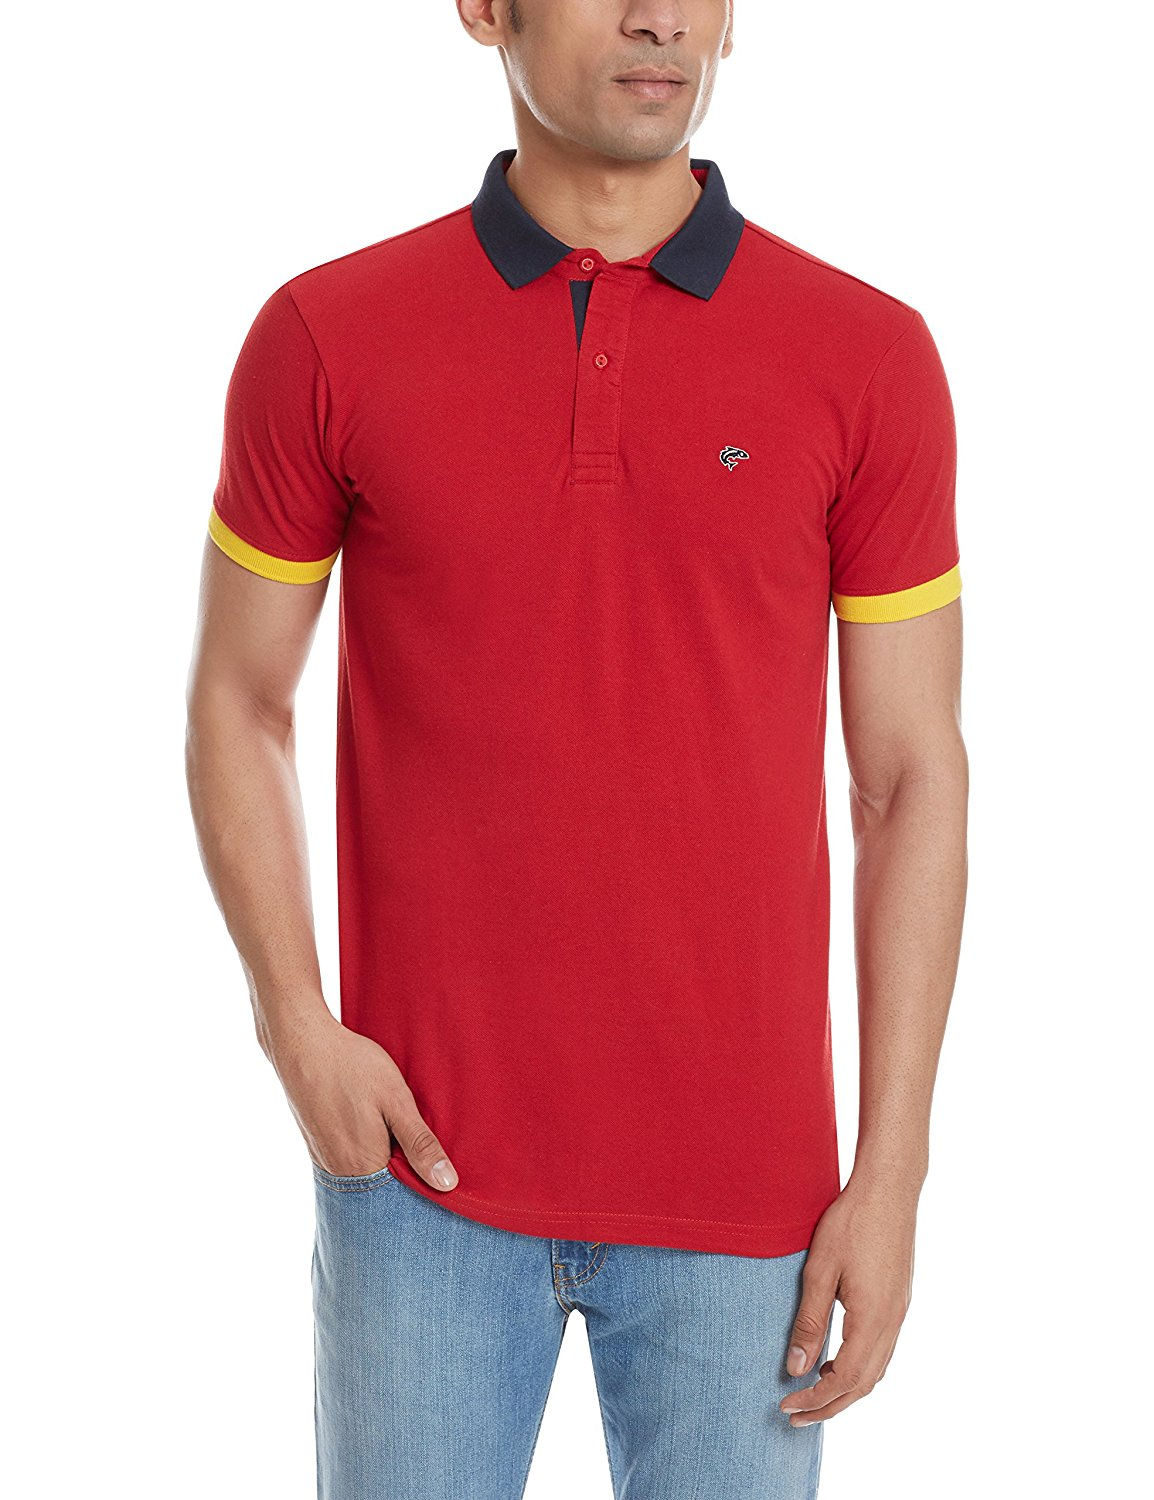 Mens polo t shirts at 199/-